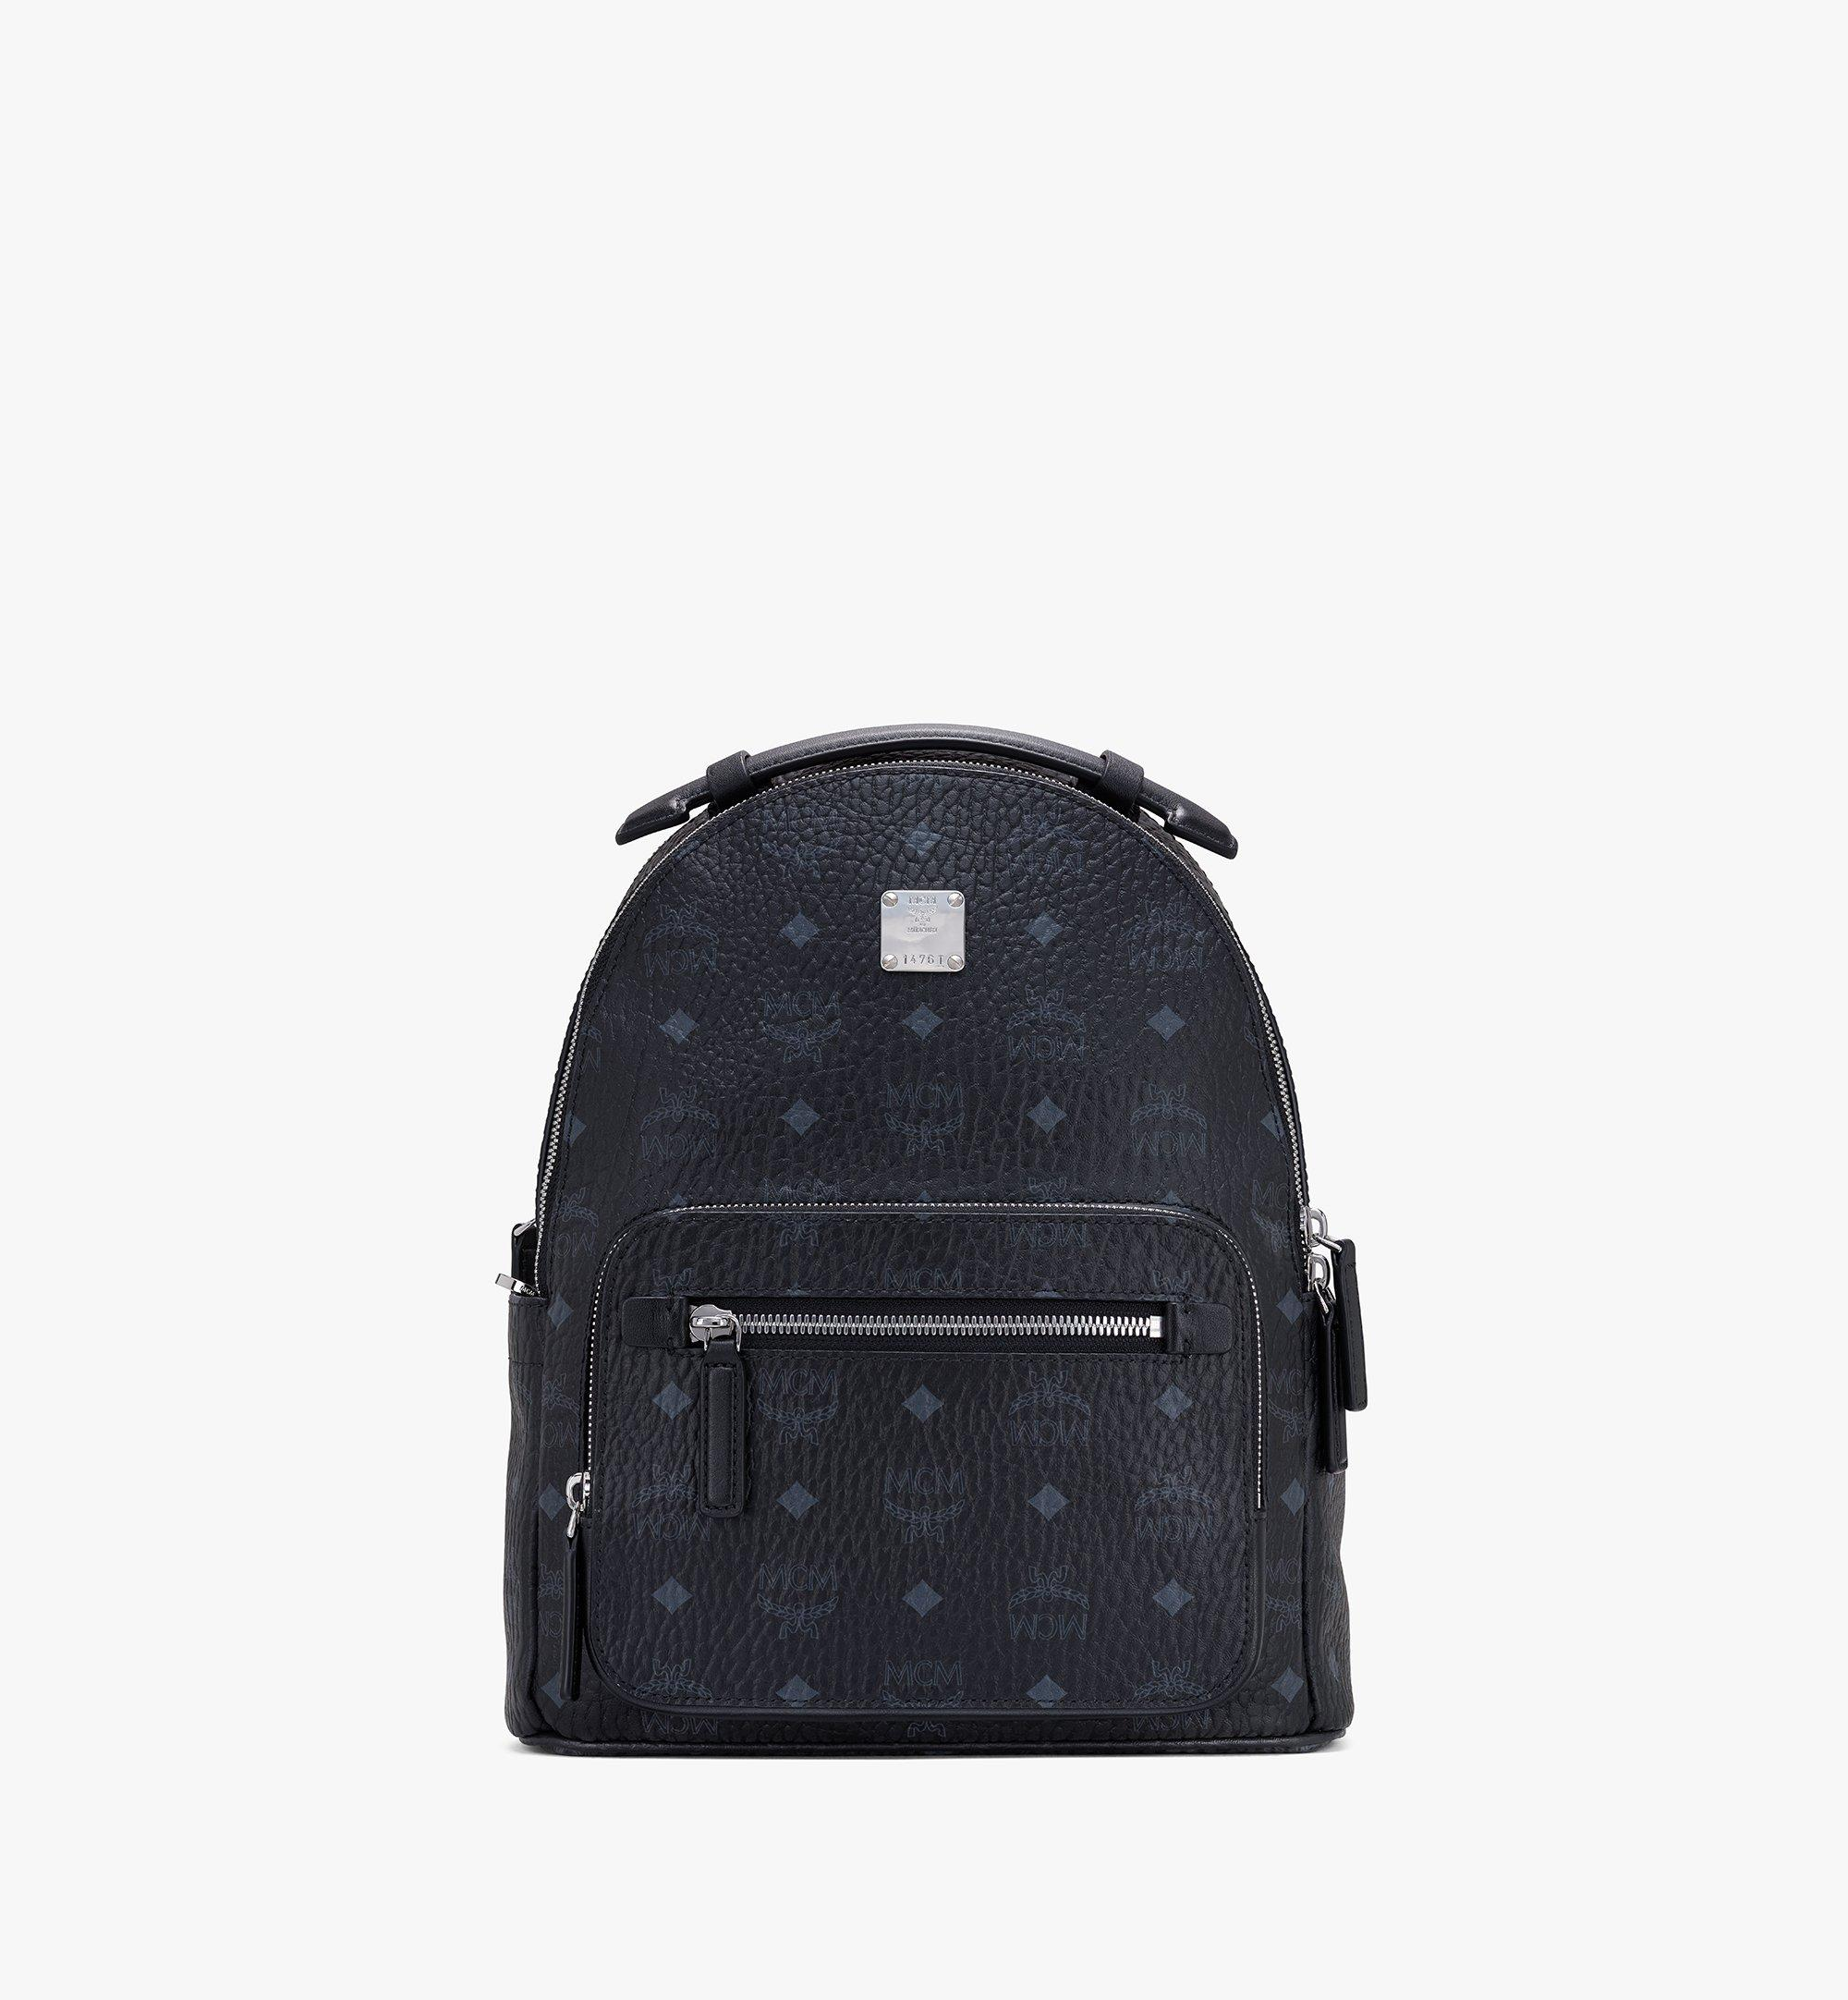 32 cm 12.5 in Stark Rucksack in Visetos Black | MCM® DE